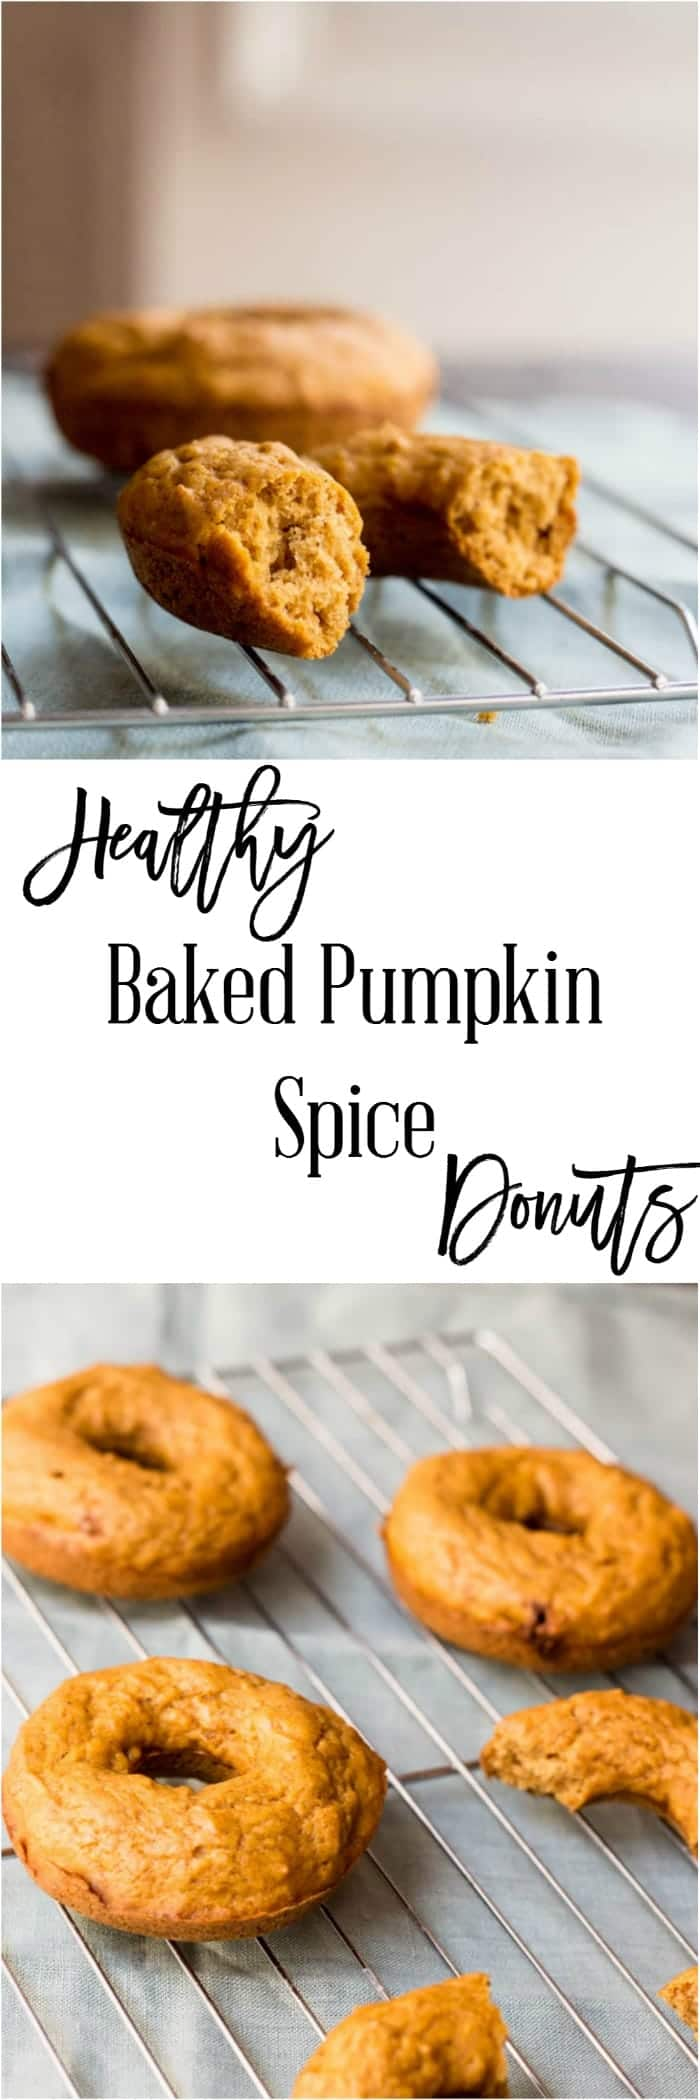 Healthy Baked Pumpkin Spice Donuts